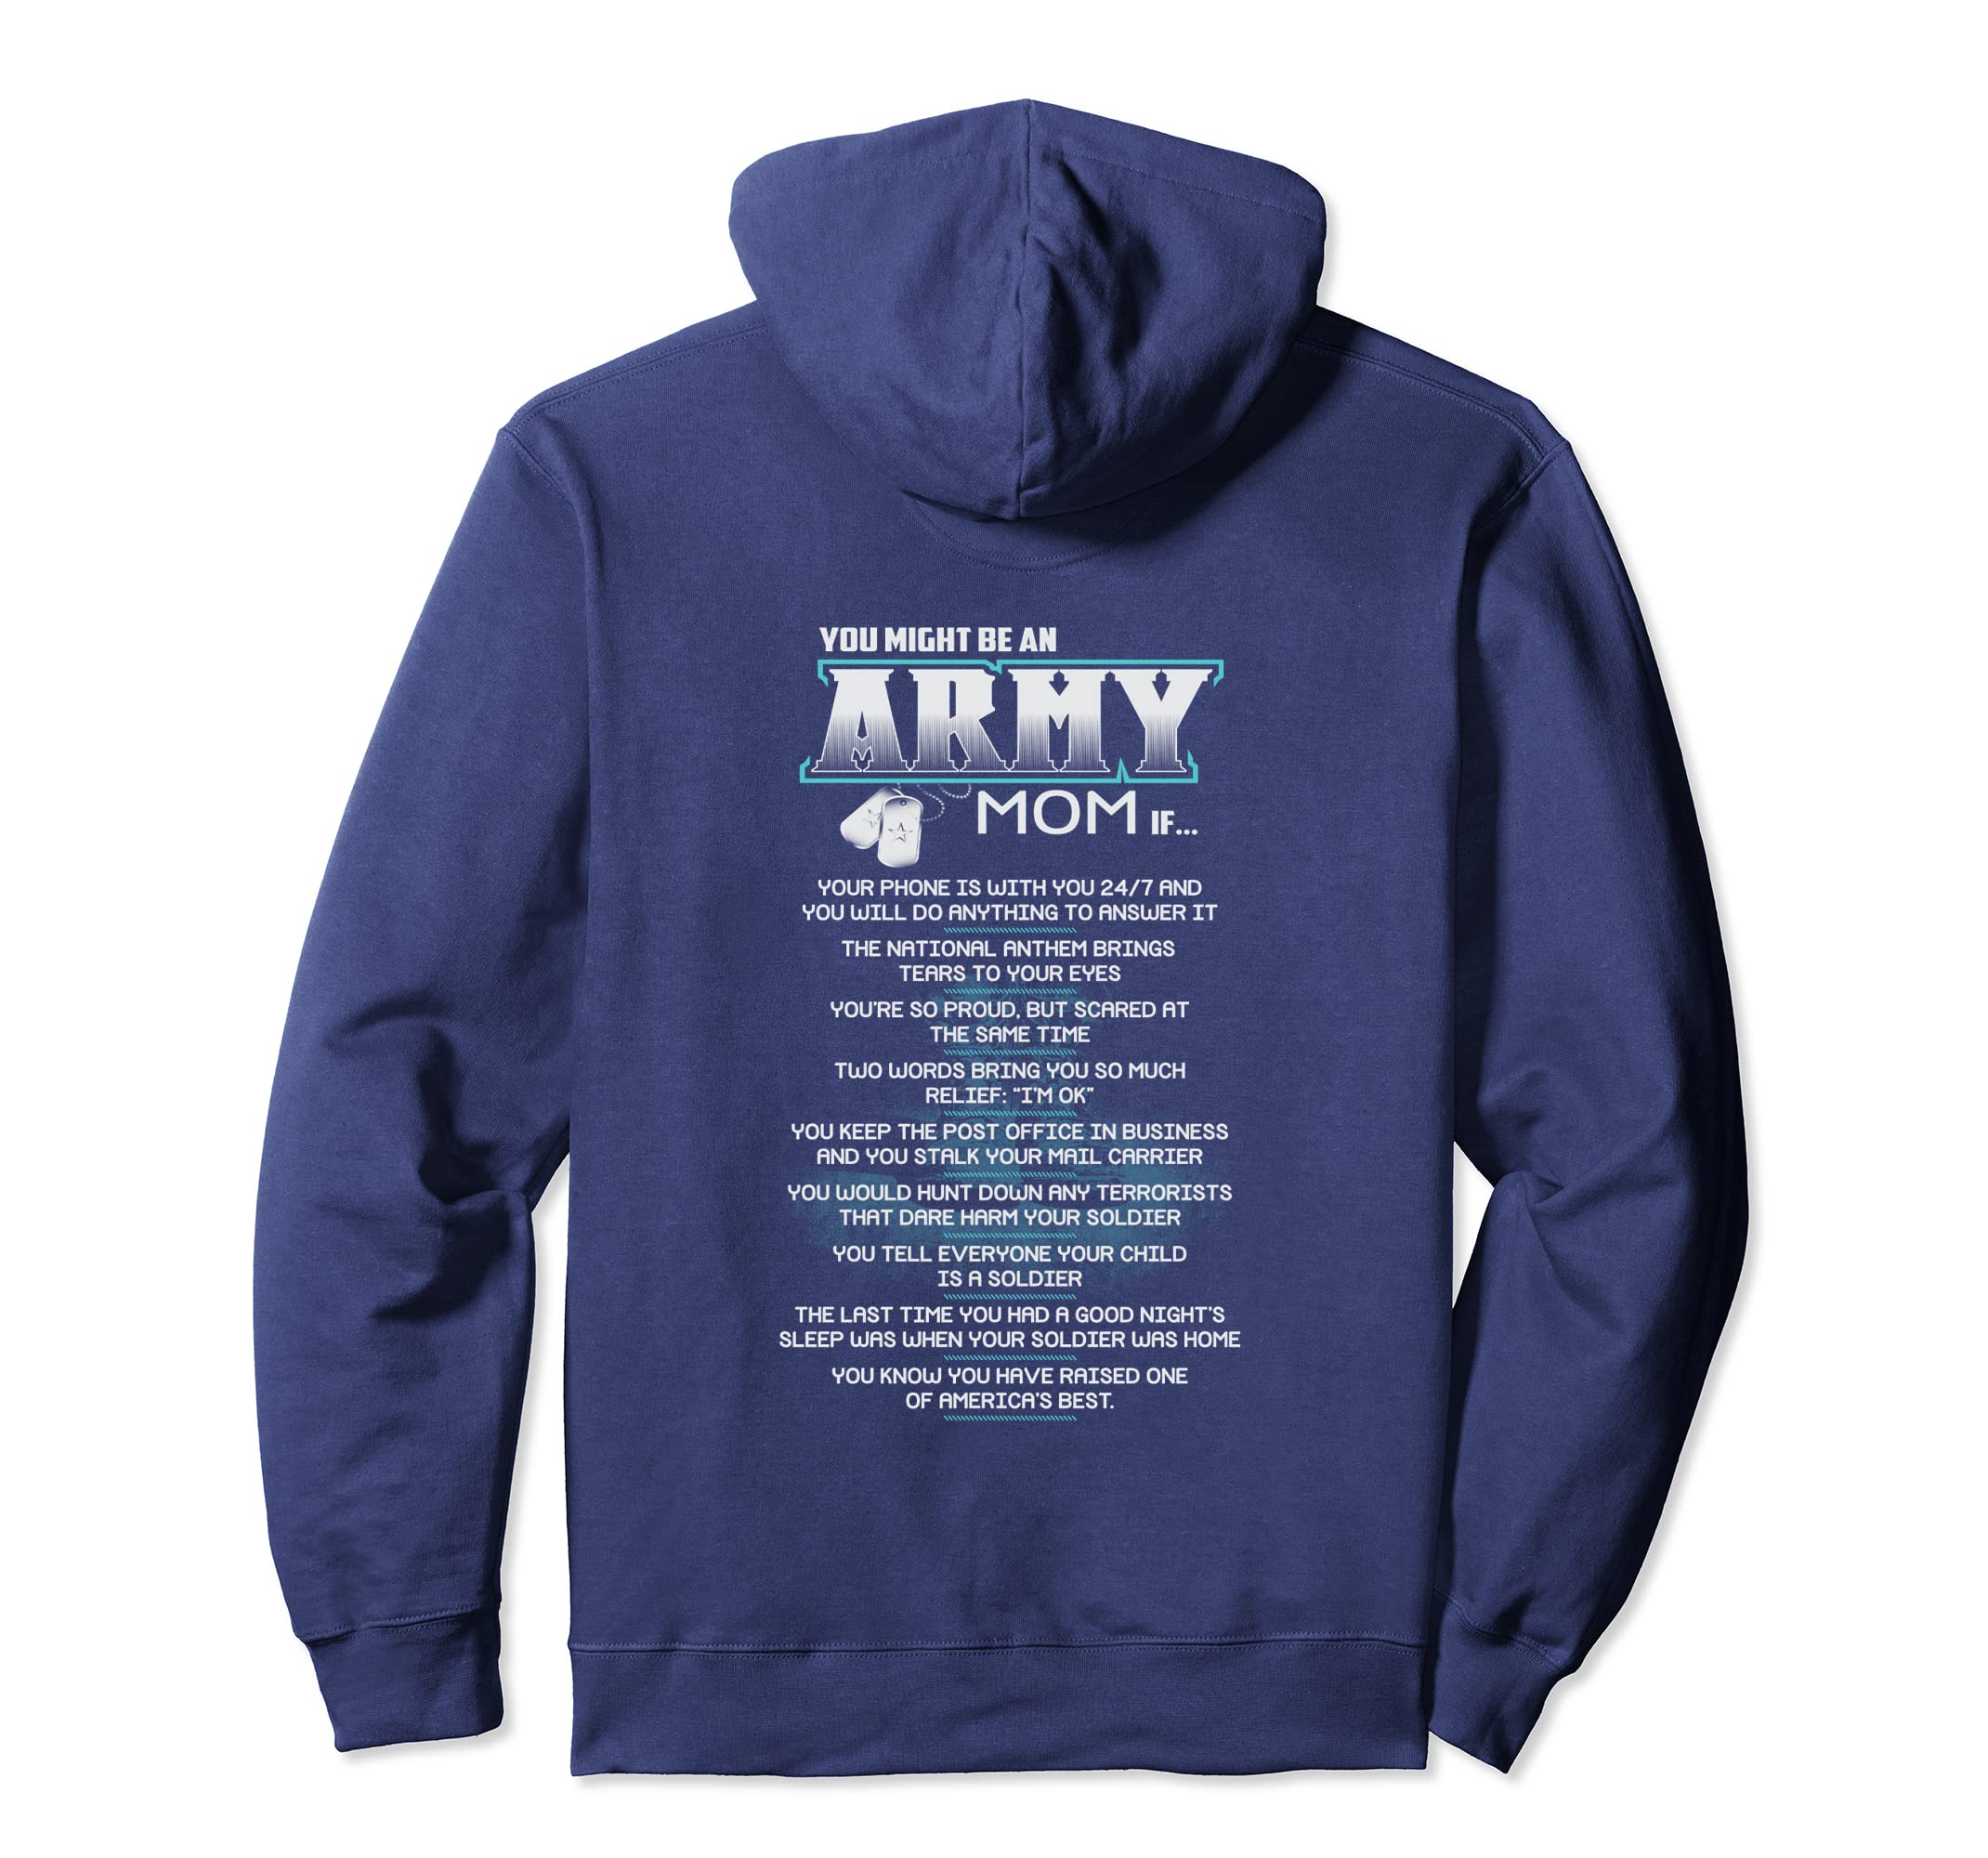 c22cdf54 Amazon.com: You Might Be An Army Mom if... Long Sleeve: Clothing